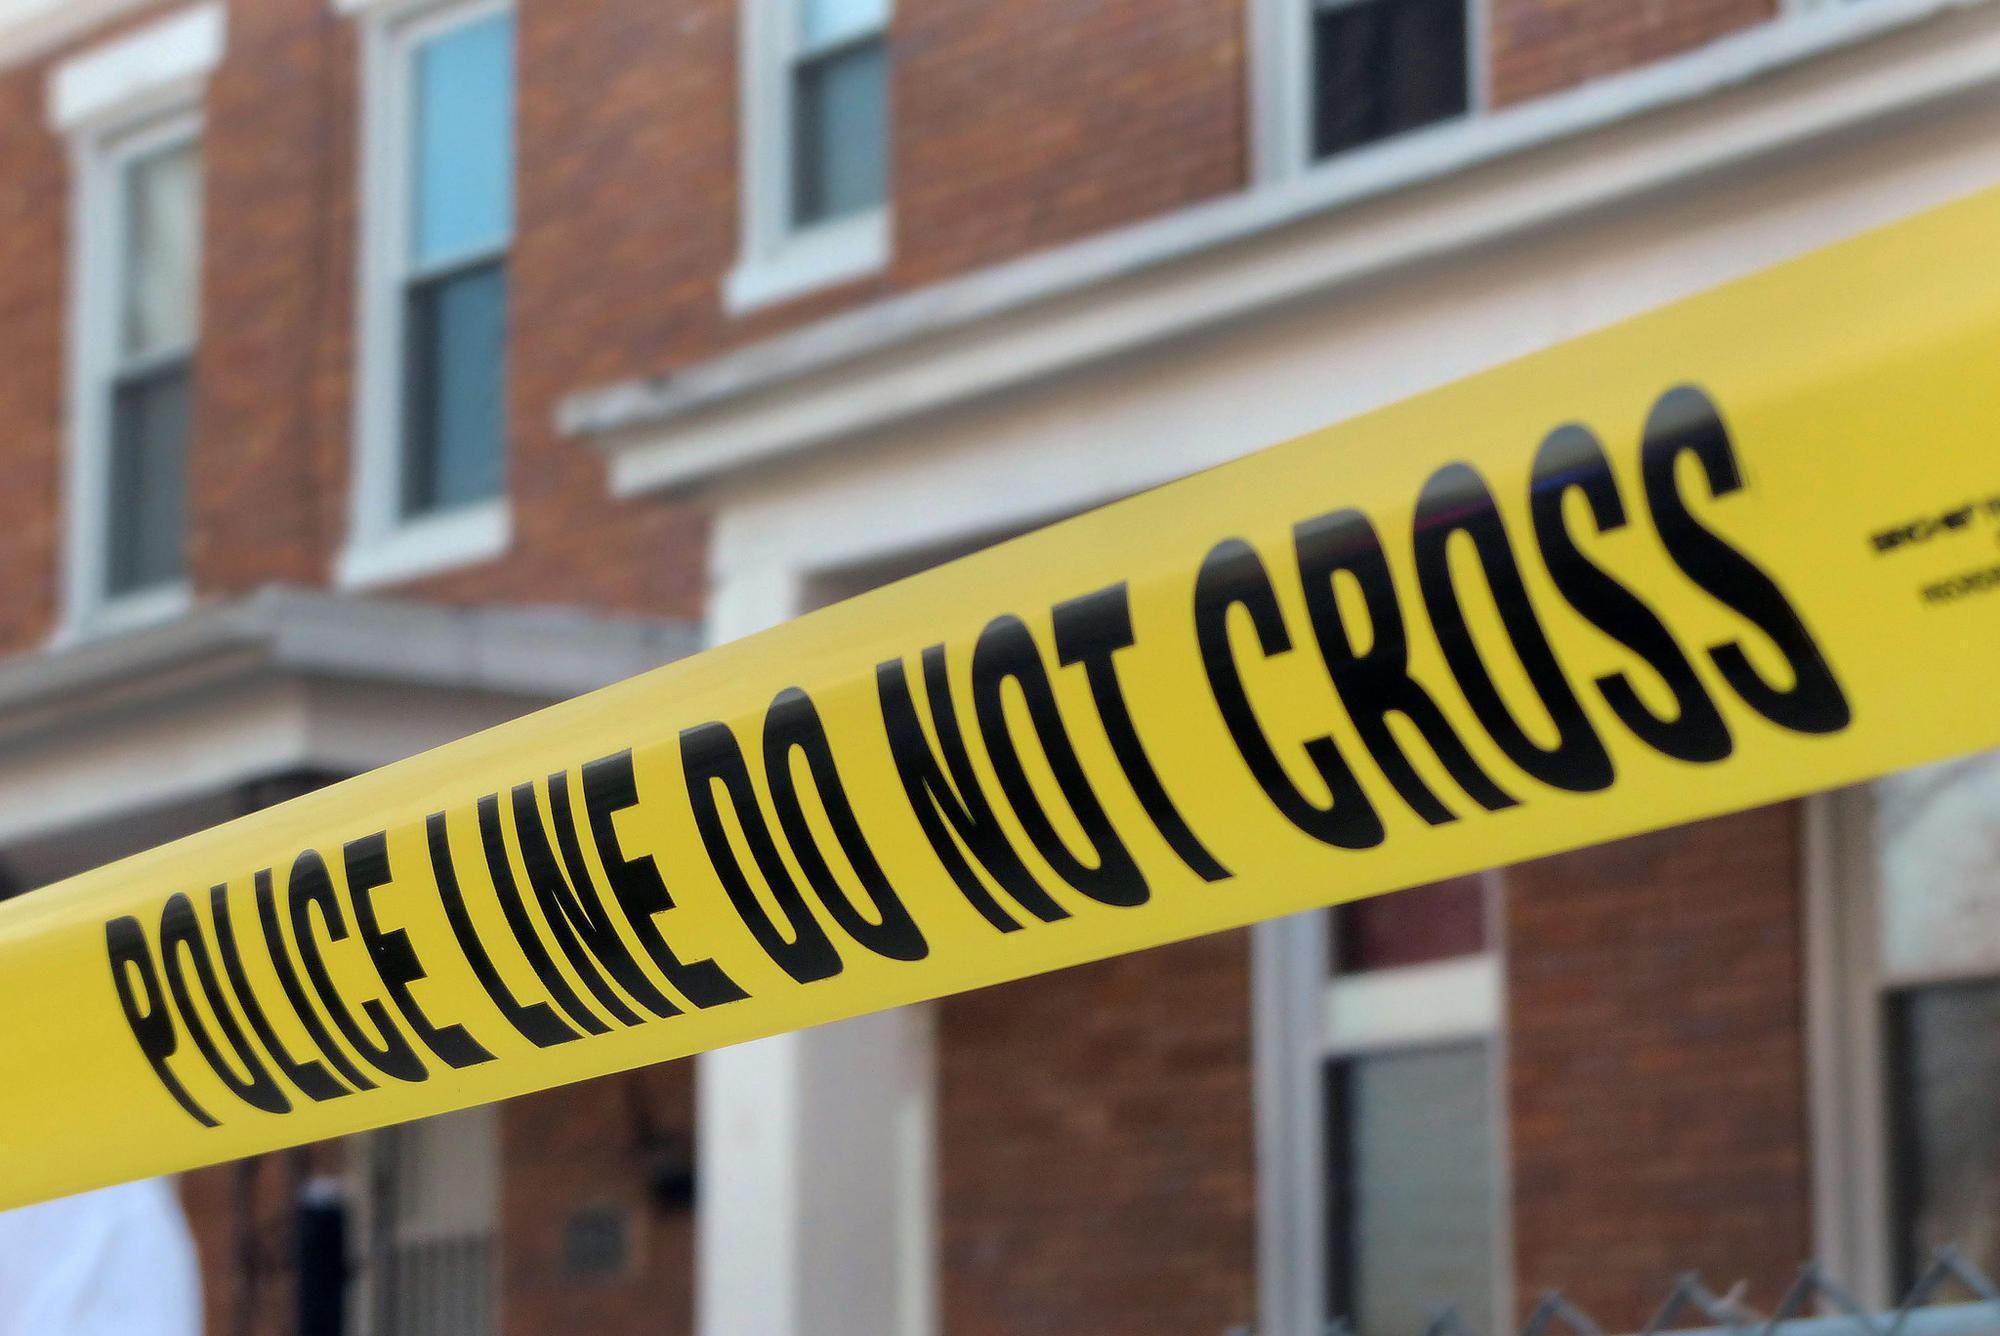 Baltimore police: Three men shot in separate incidents in city on Saturday